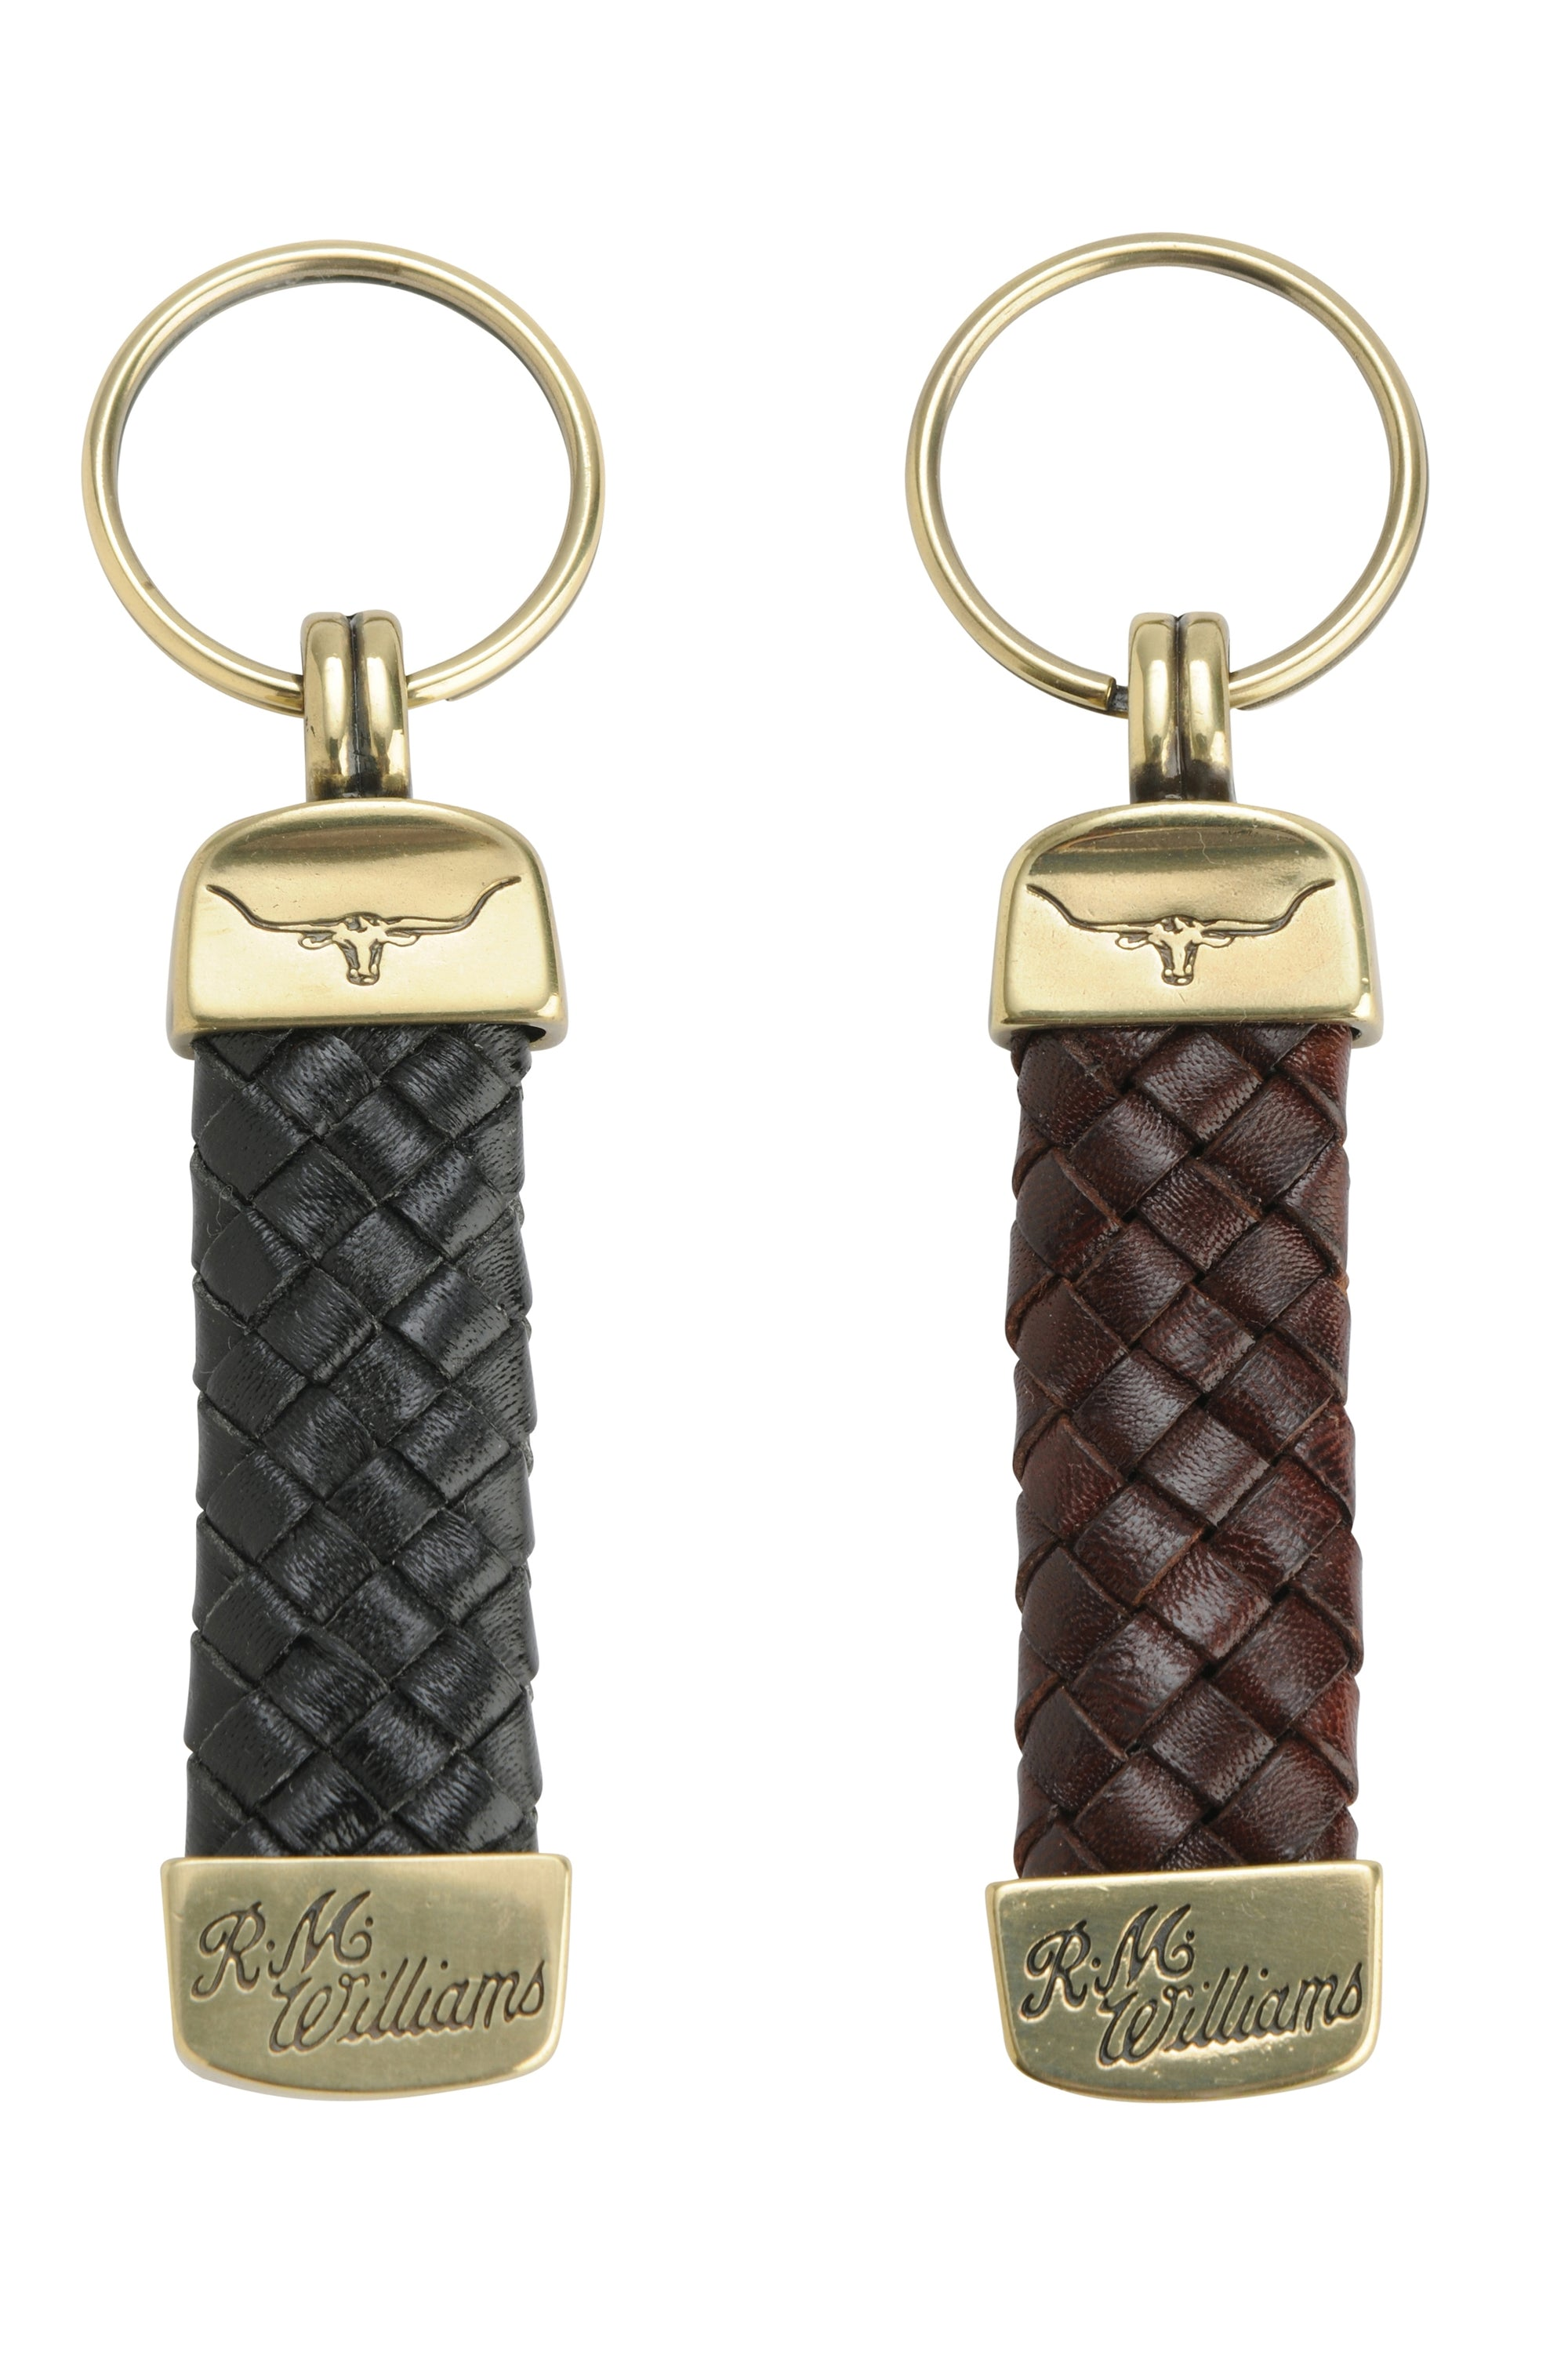 RM Williams Plaited Key Ring